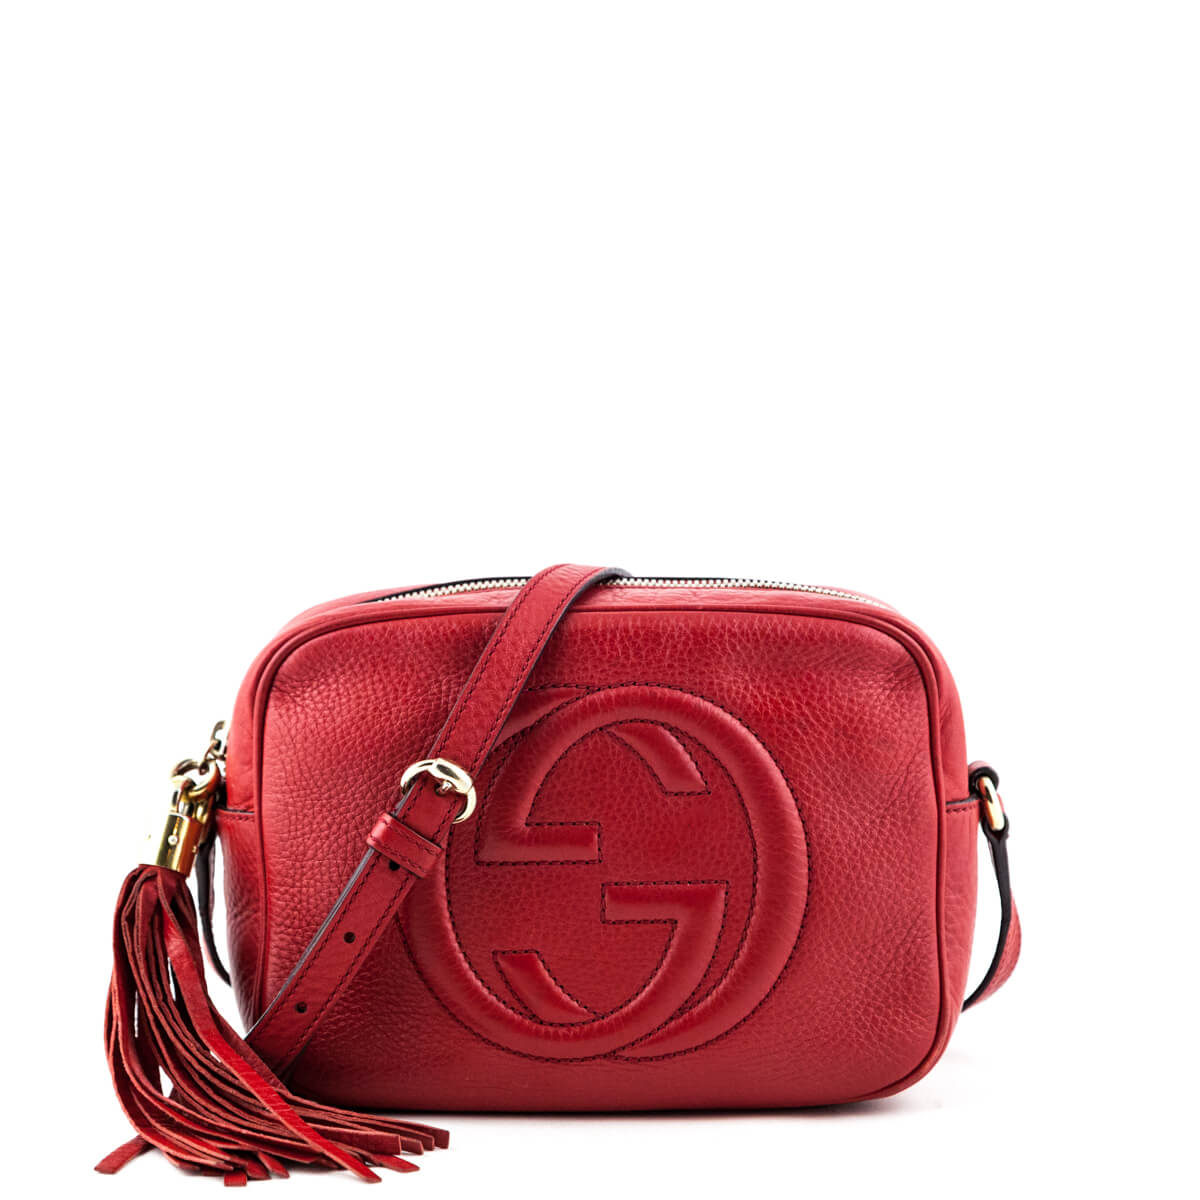 c43c8ef6fddf Gucci Red Soho Disco - LOVE that BAG - Preowned Authentic Designer Handbags  ...